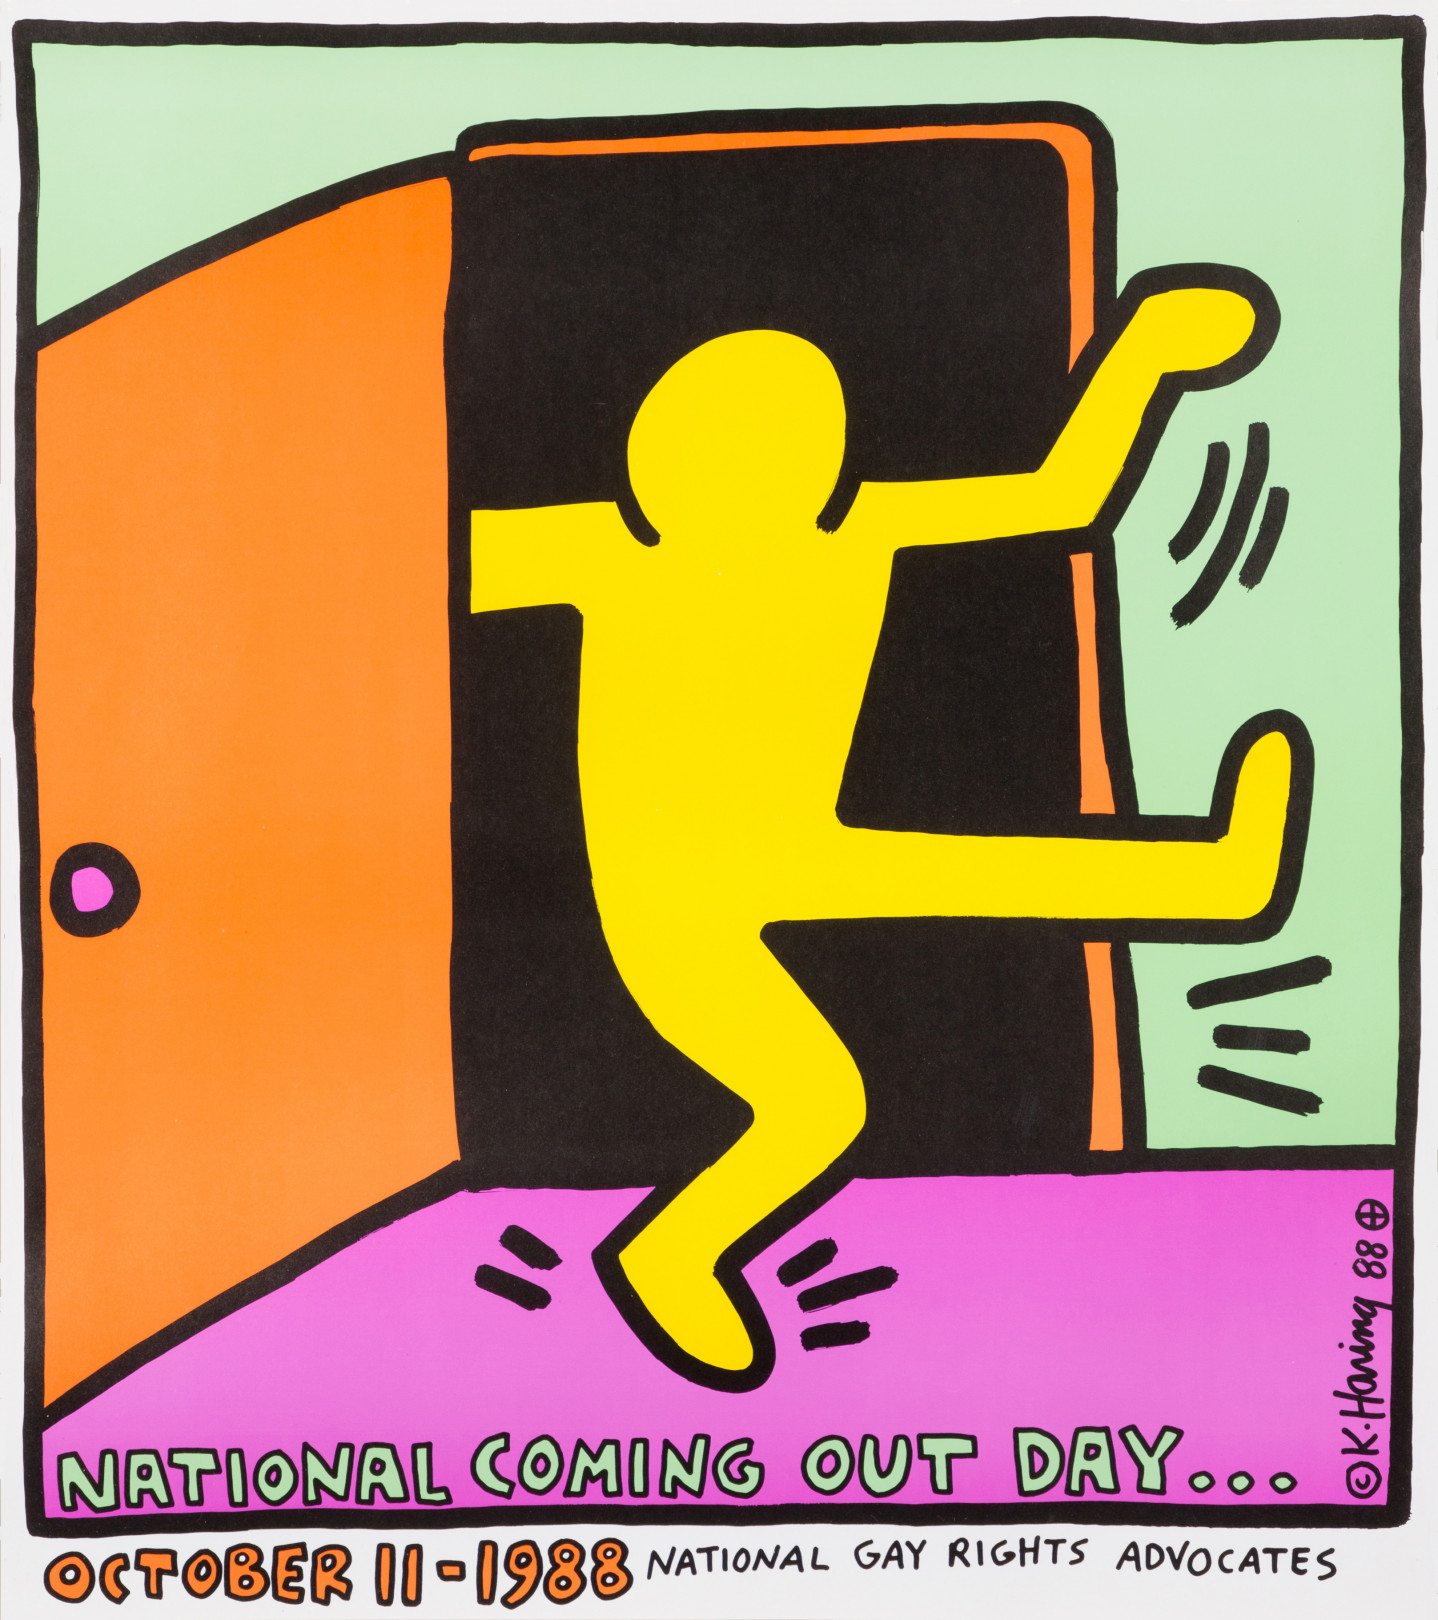 9489698b288bc9 ポスター「National Coming Out Day…」 1988© Keith Haring Foundation Courtesy of  Nakamura Keith Haring Collection.